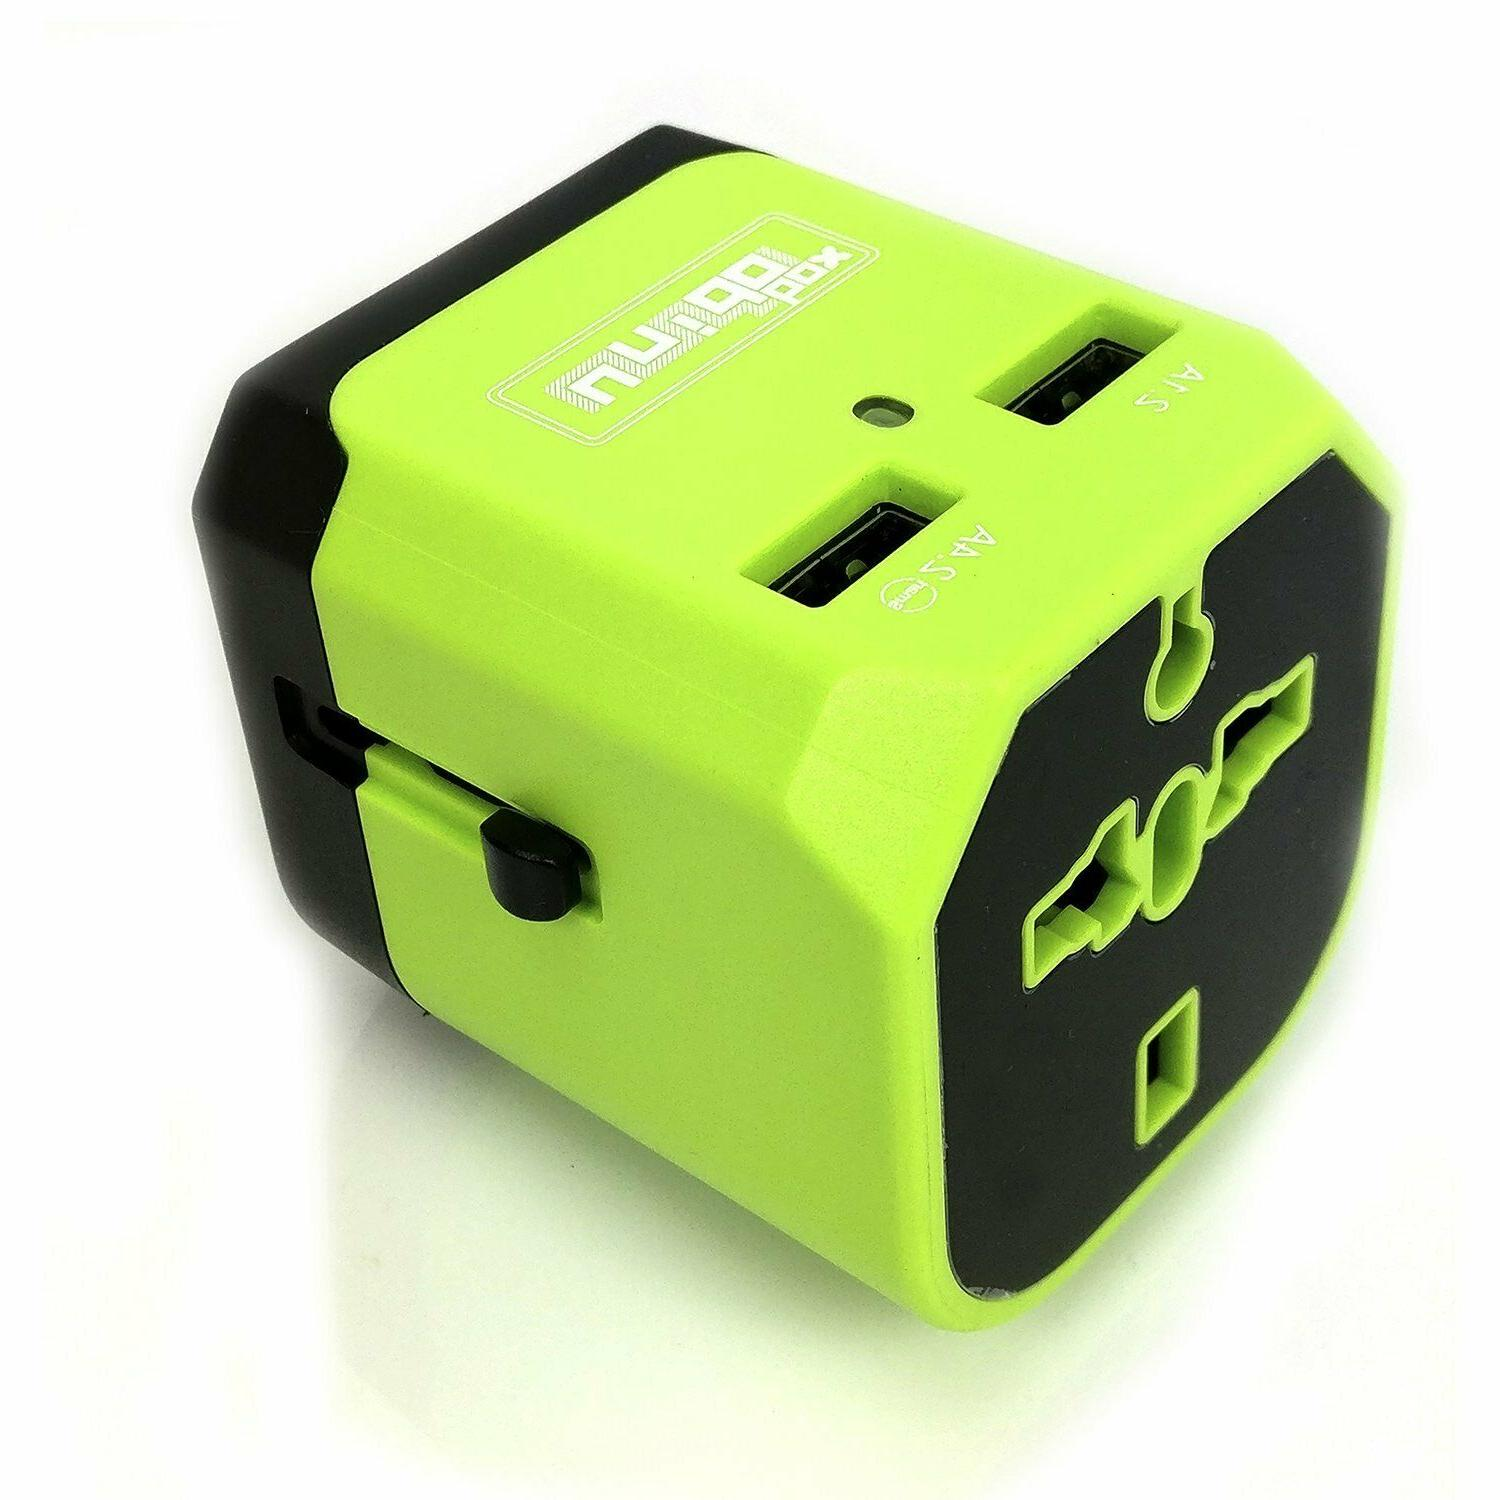 Travel Adapter Outlet Universal EU to US to EU